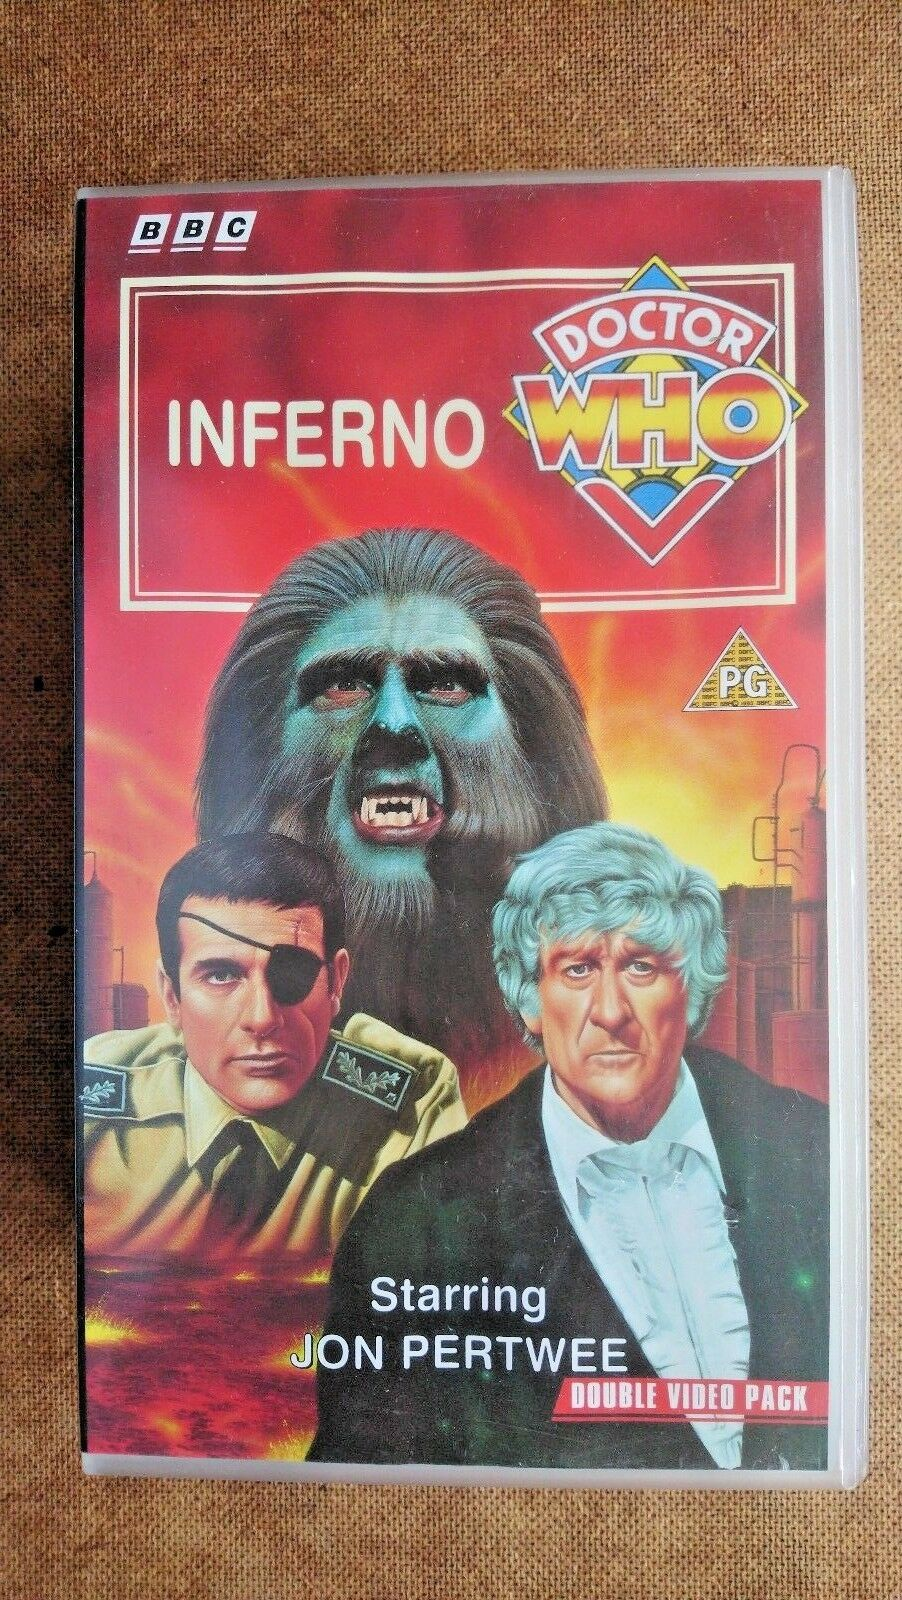 Doctor Who - Inferno (VHS, 1994, 2-Tape Set) - Jon Pertwee - TAPES  SEALED